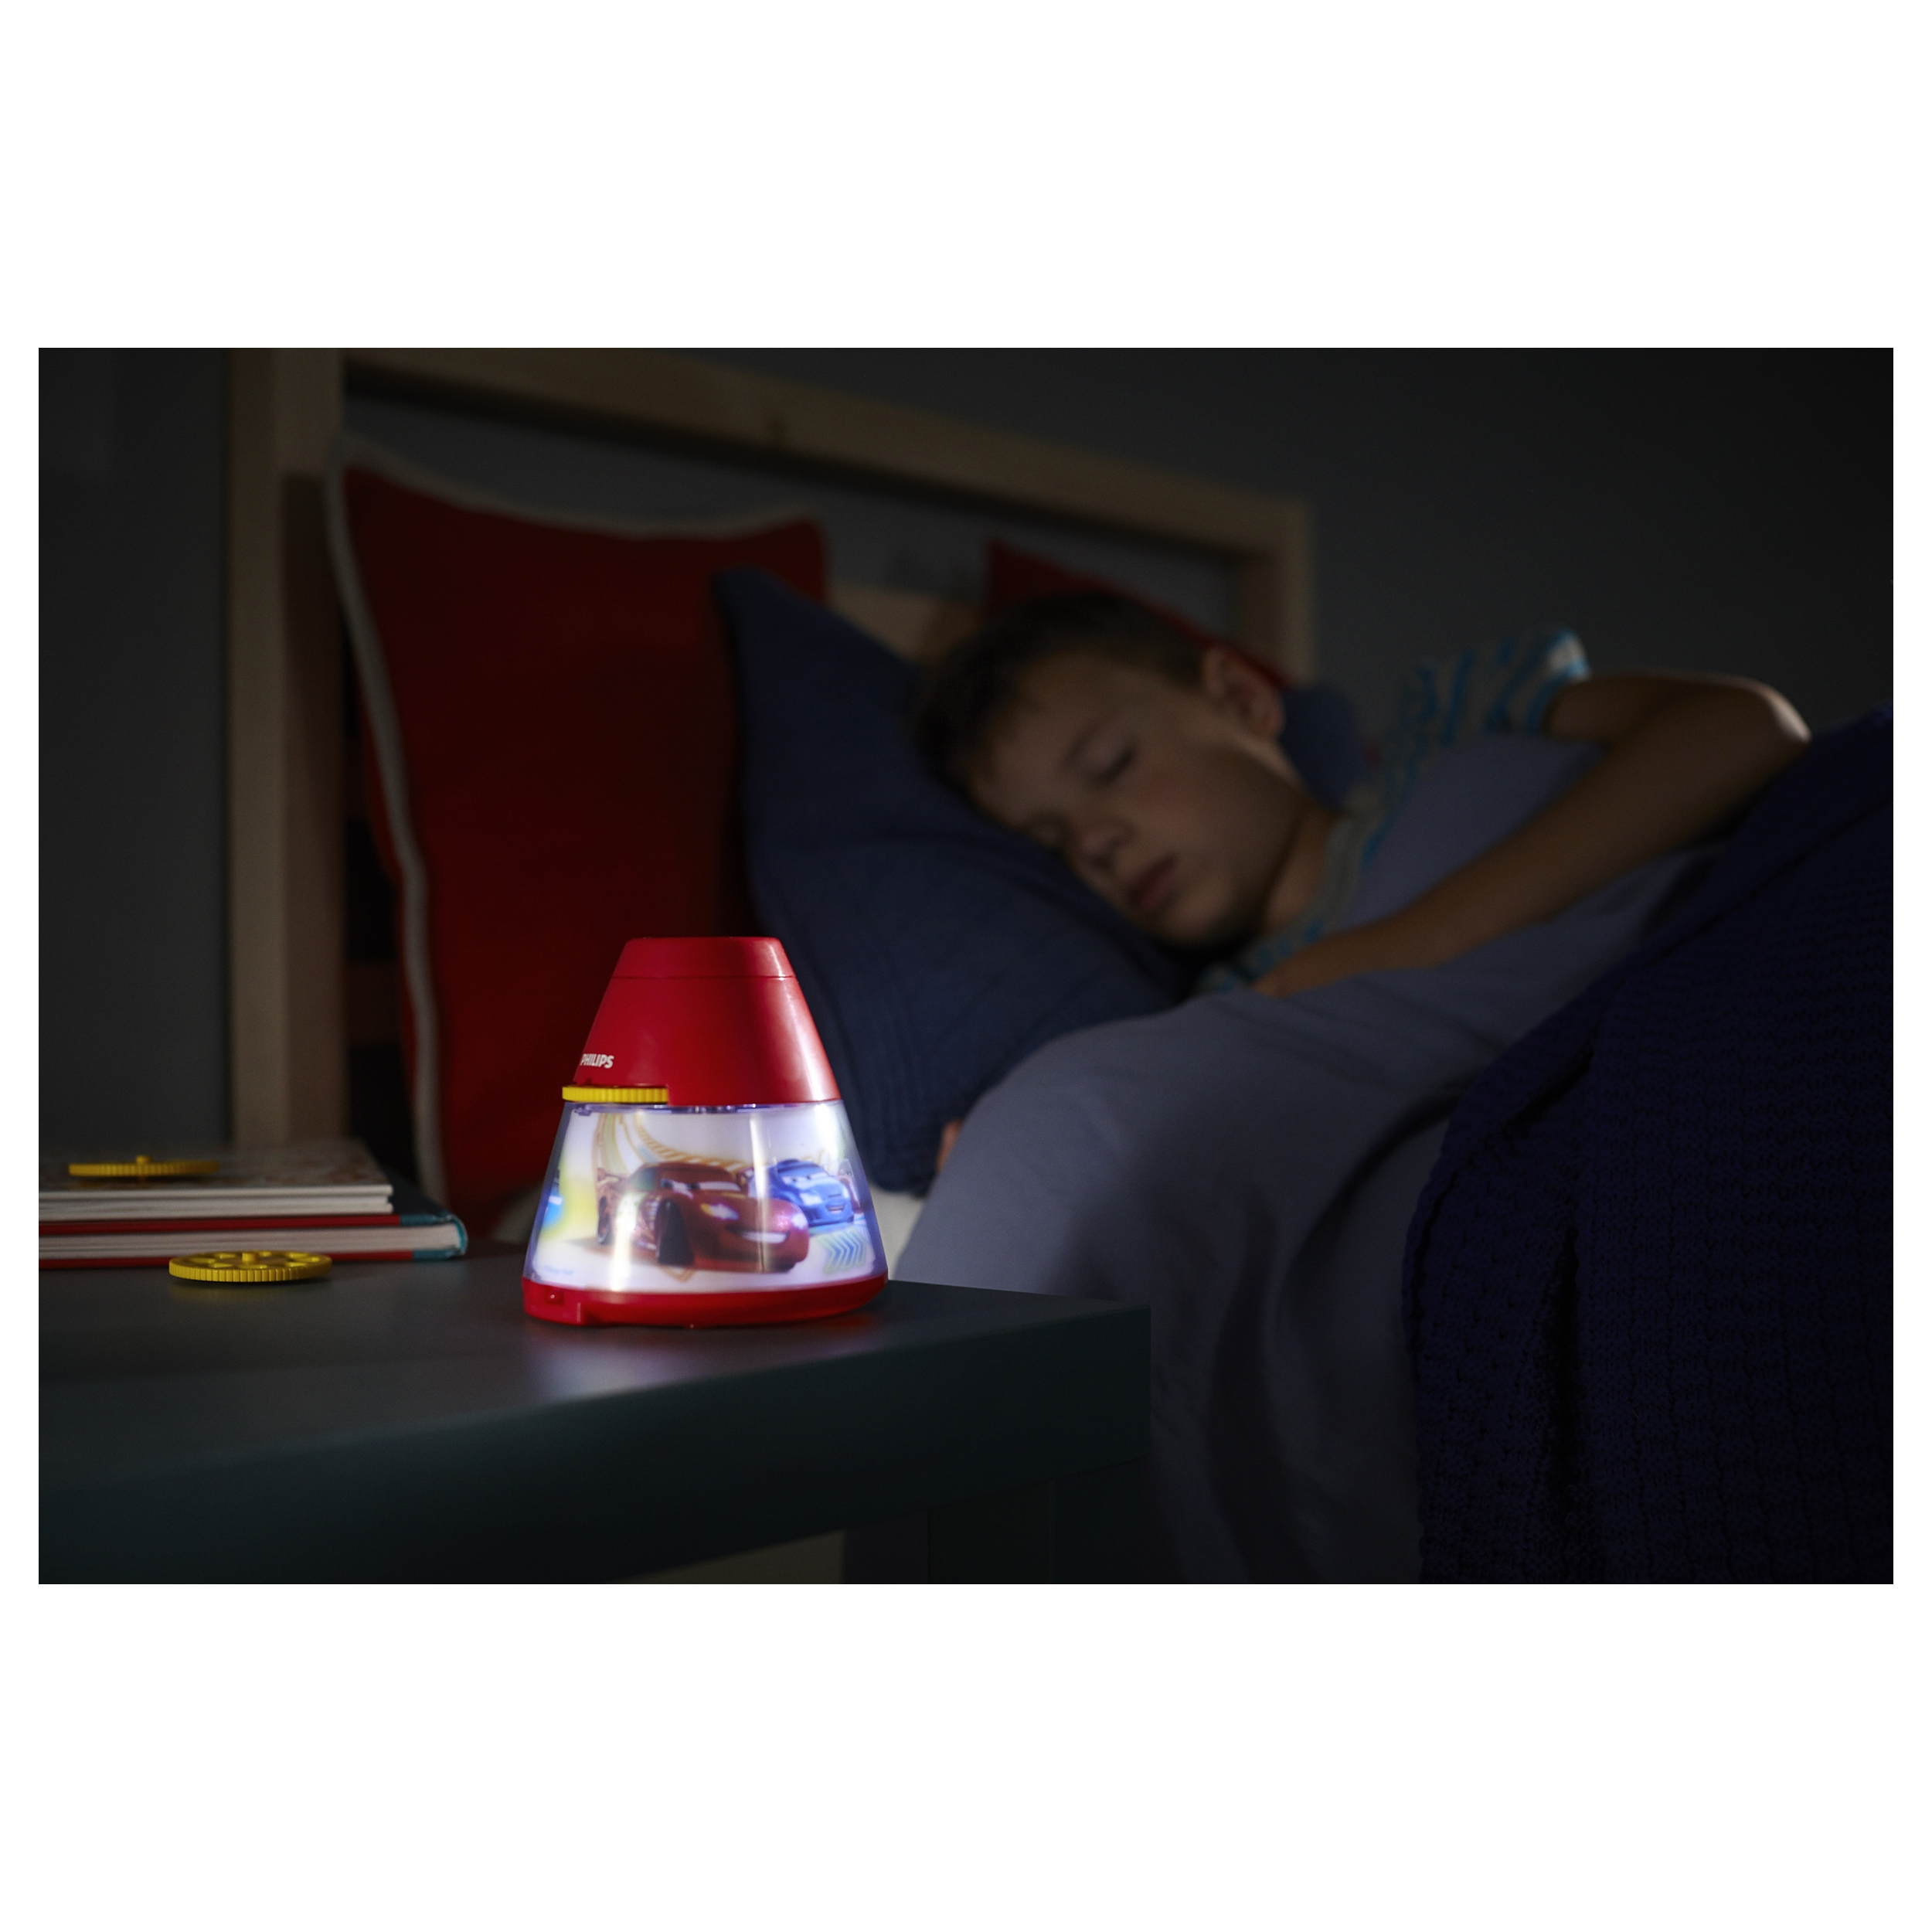 Led Lampe Kinderzimmer Philips Led Lampe Kinderzimmer Disney Projektor